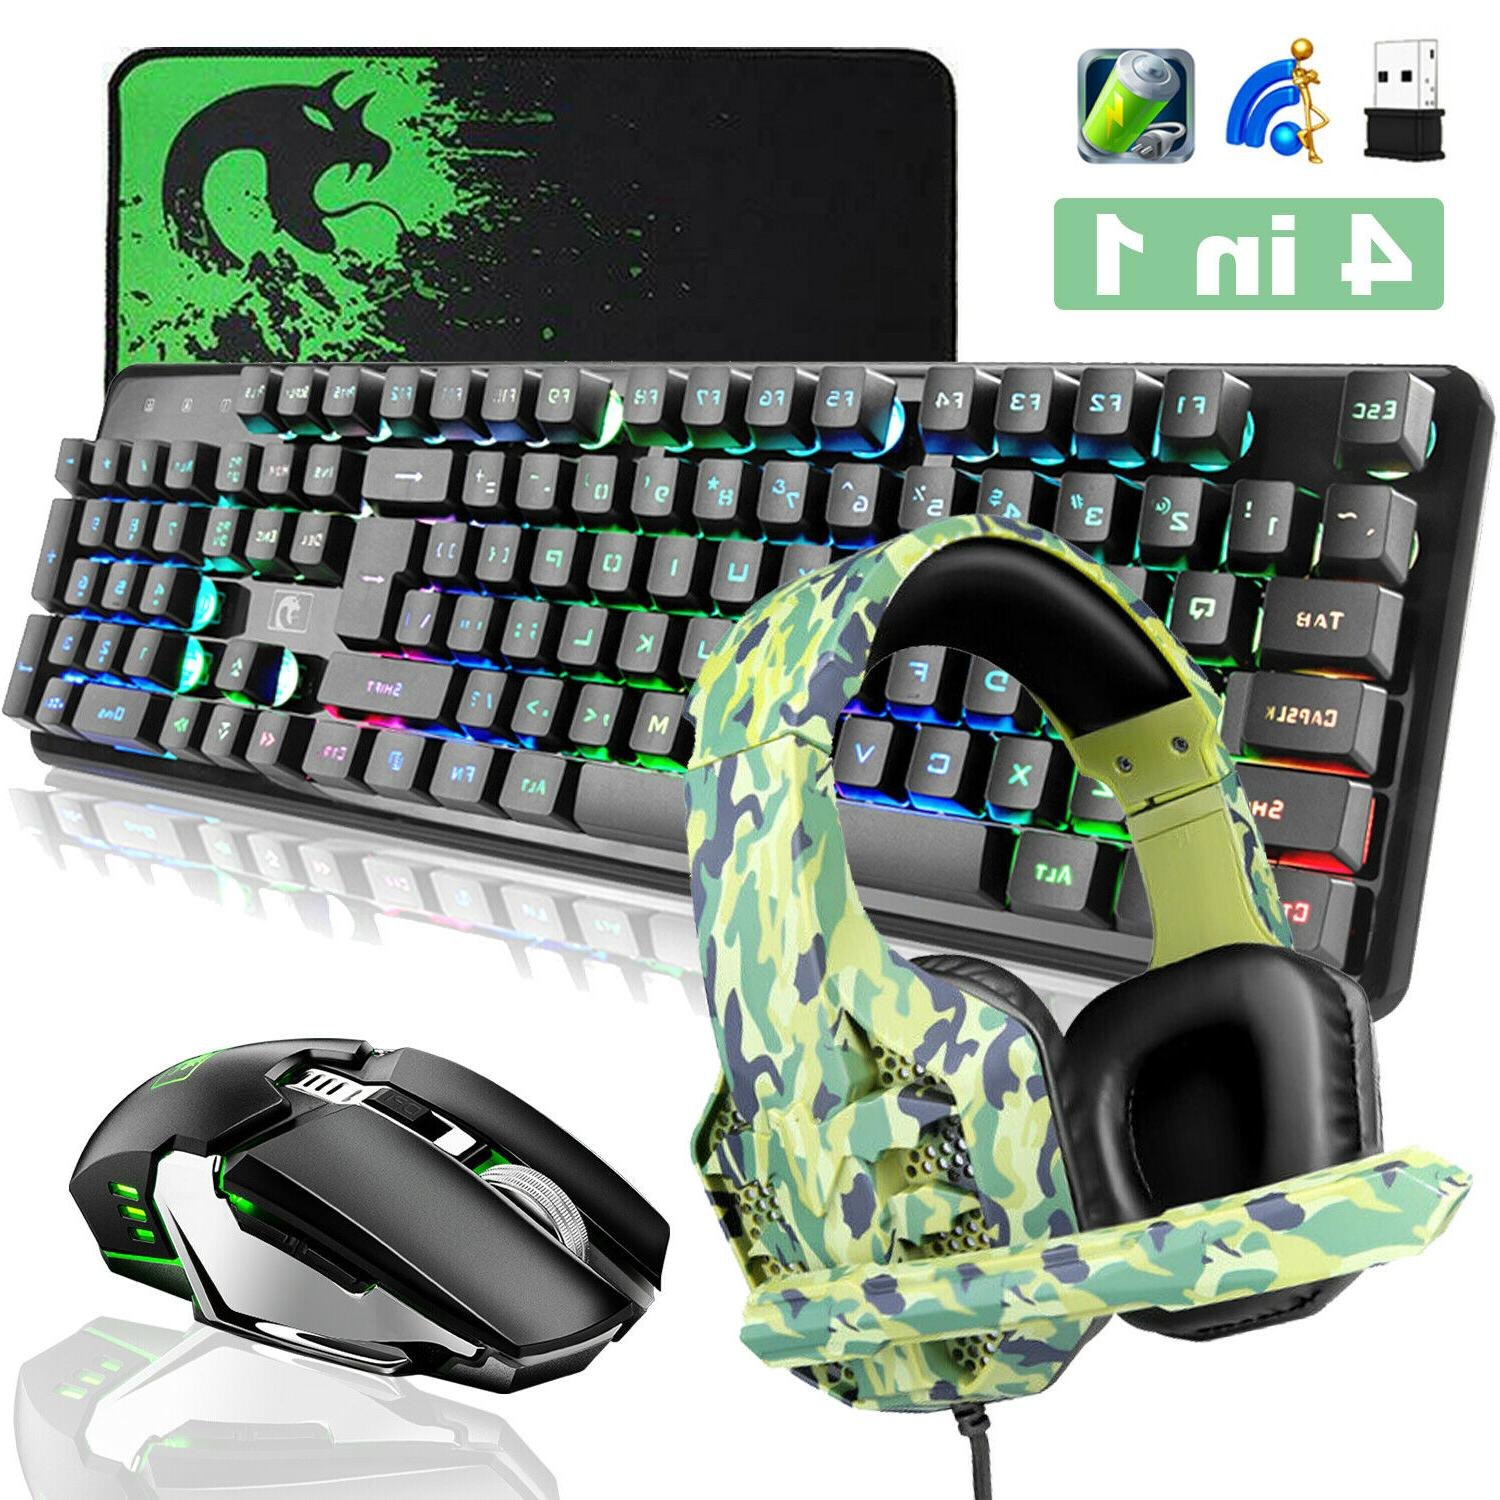 4 in1 K620 Wireless Gaming Keyboard and Mouse + Headset Sets